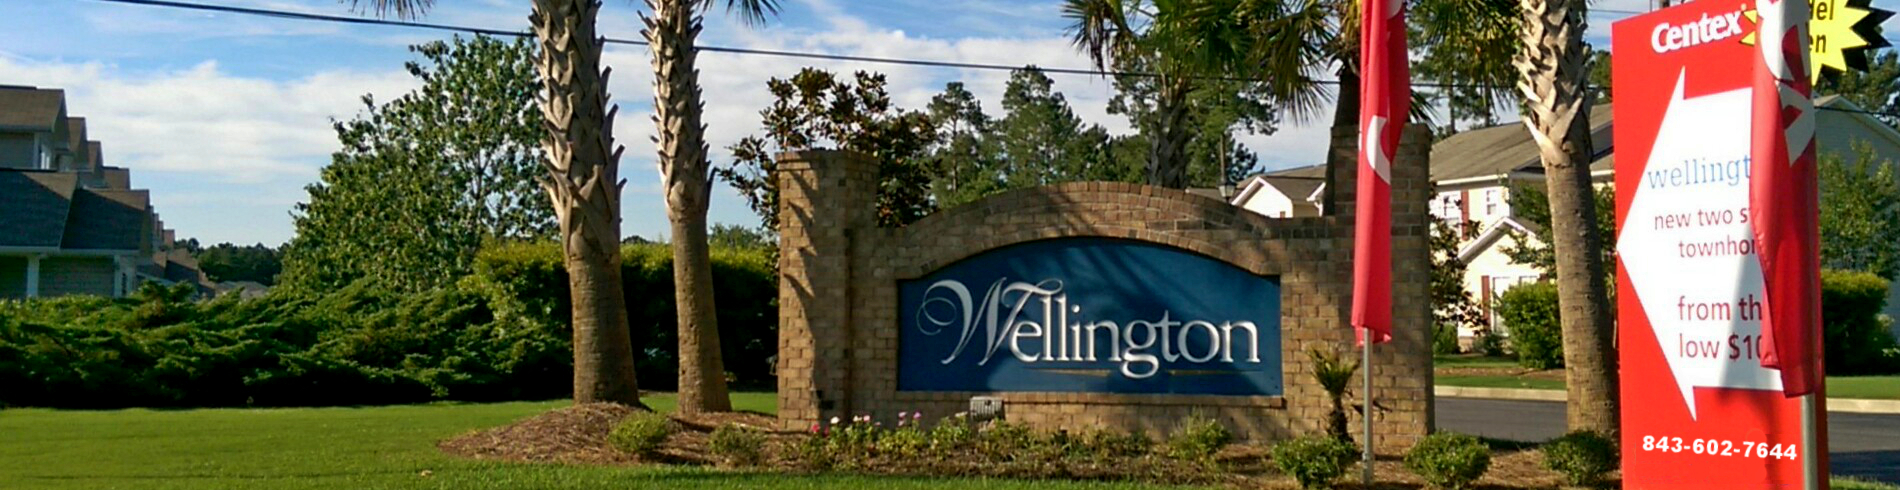 Townhomes For Sale in Wellington, Myrtle Beach SC